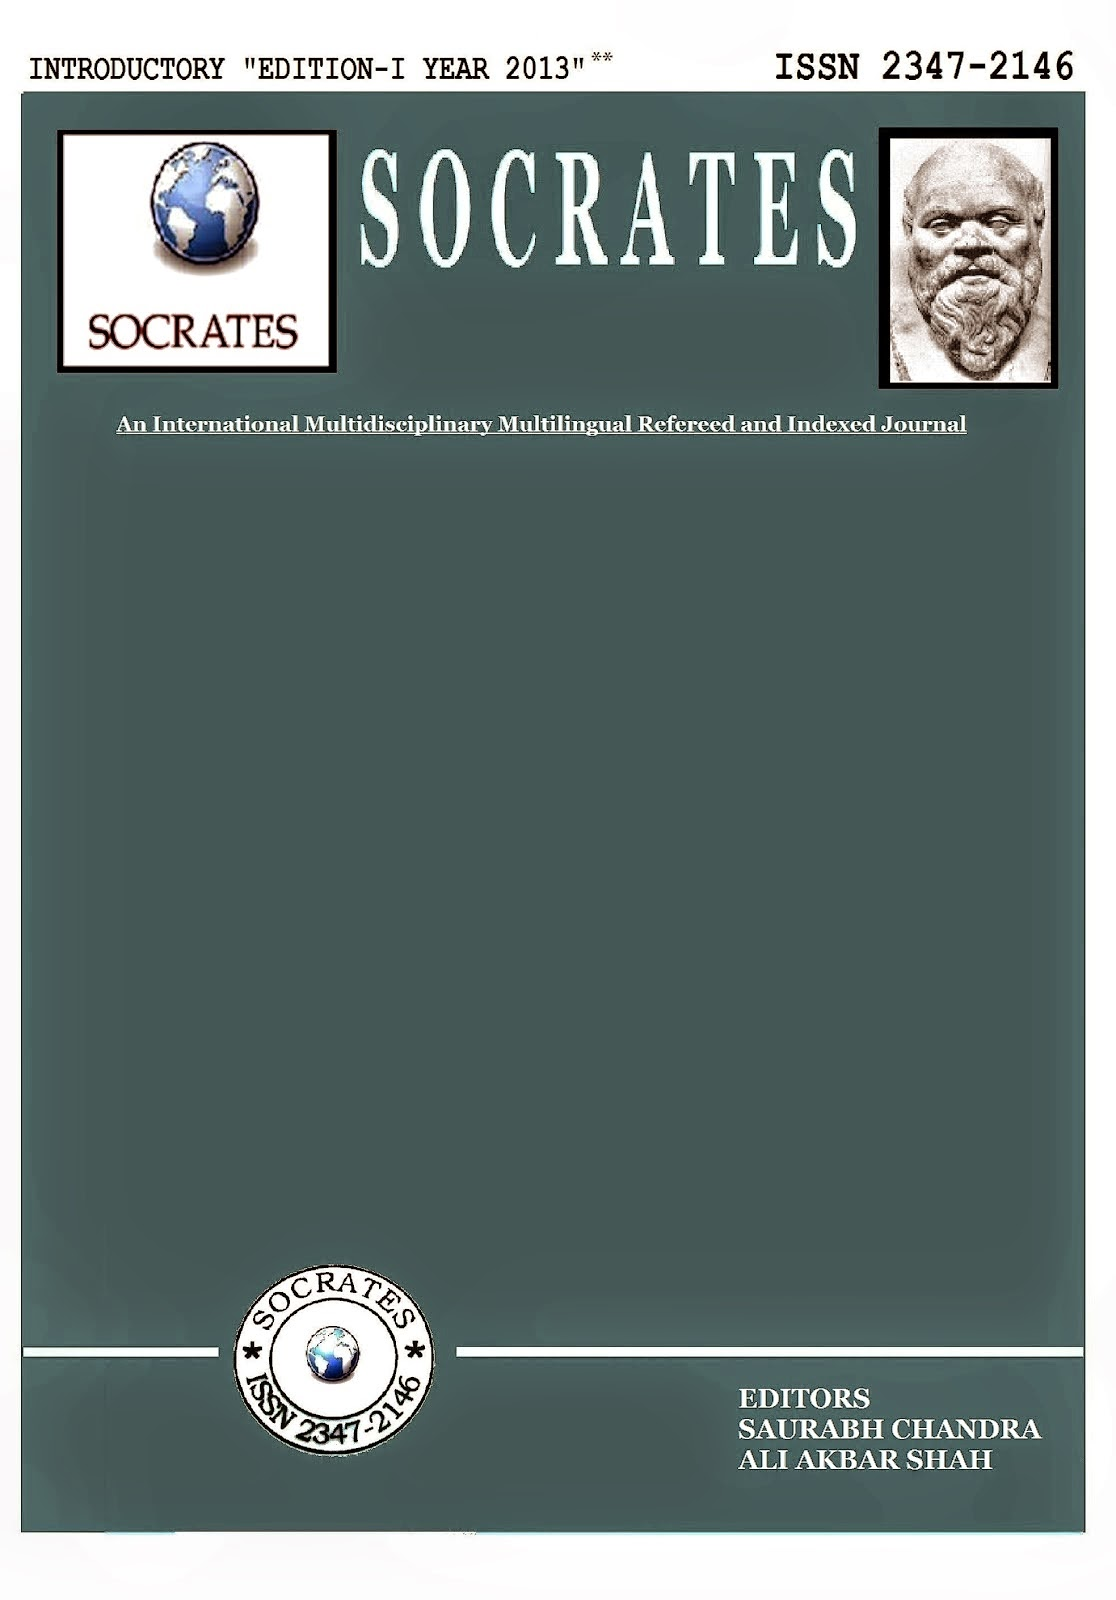 SOCRATES EDITION - I YEAR 2013 ON GOOGLE BOOKS